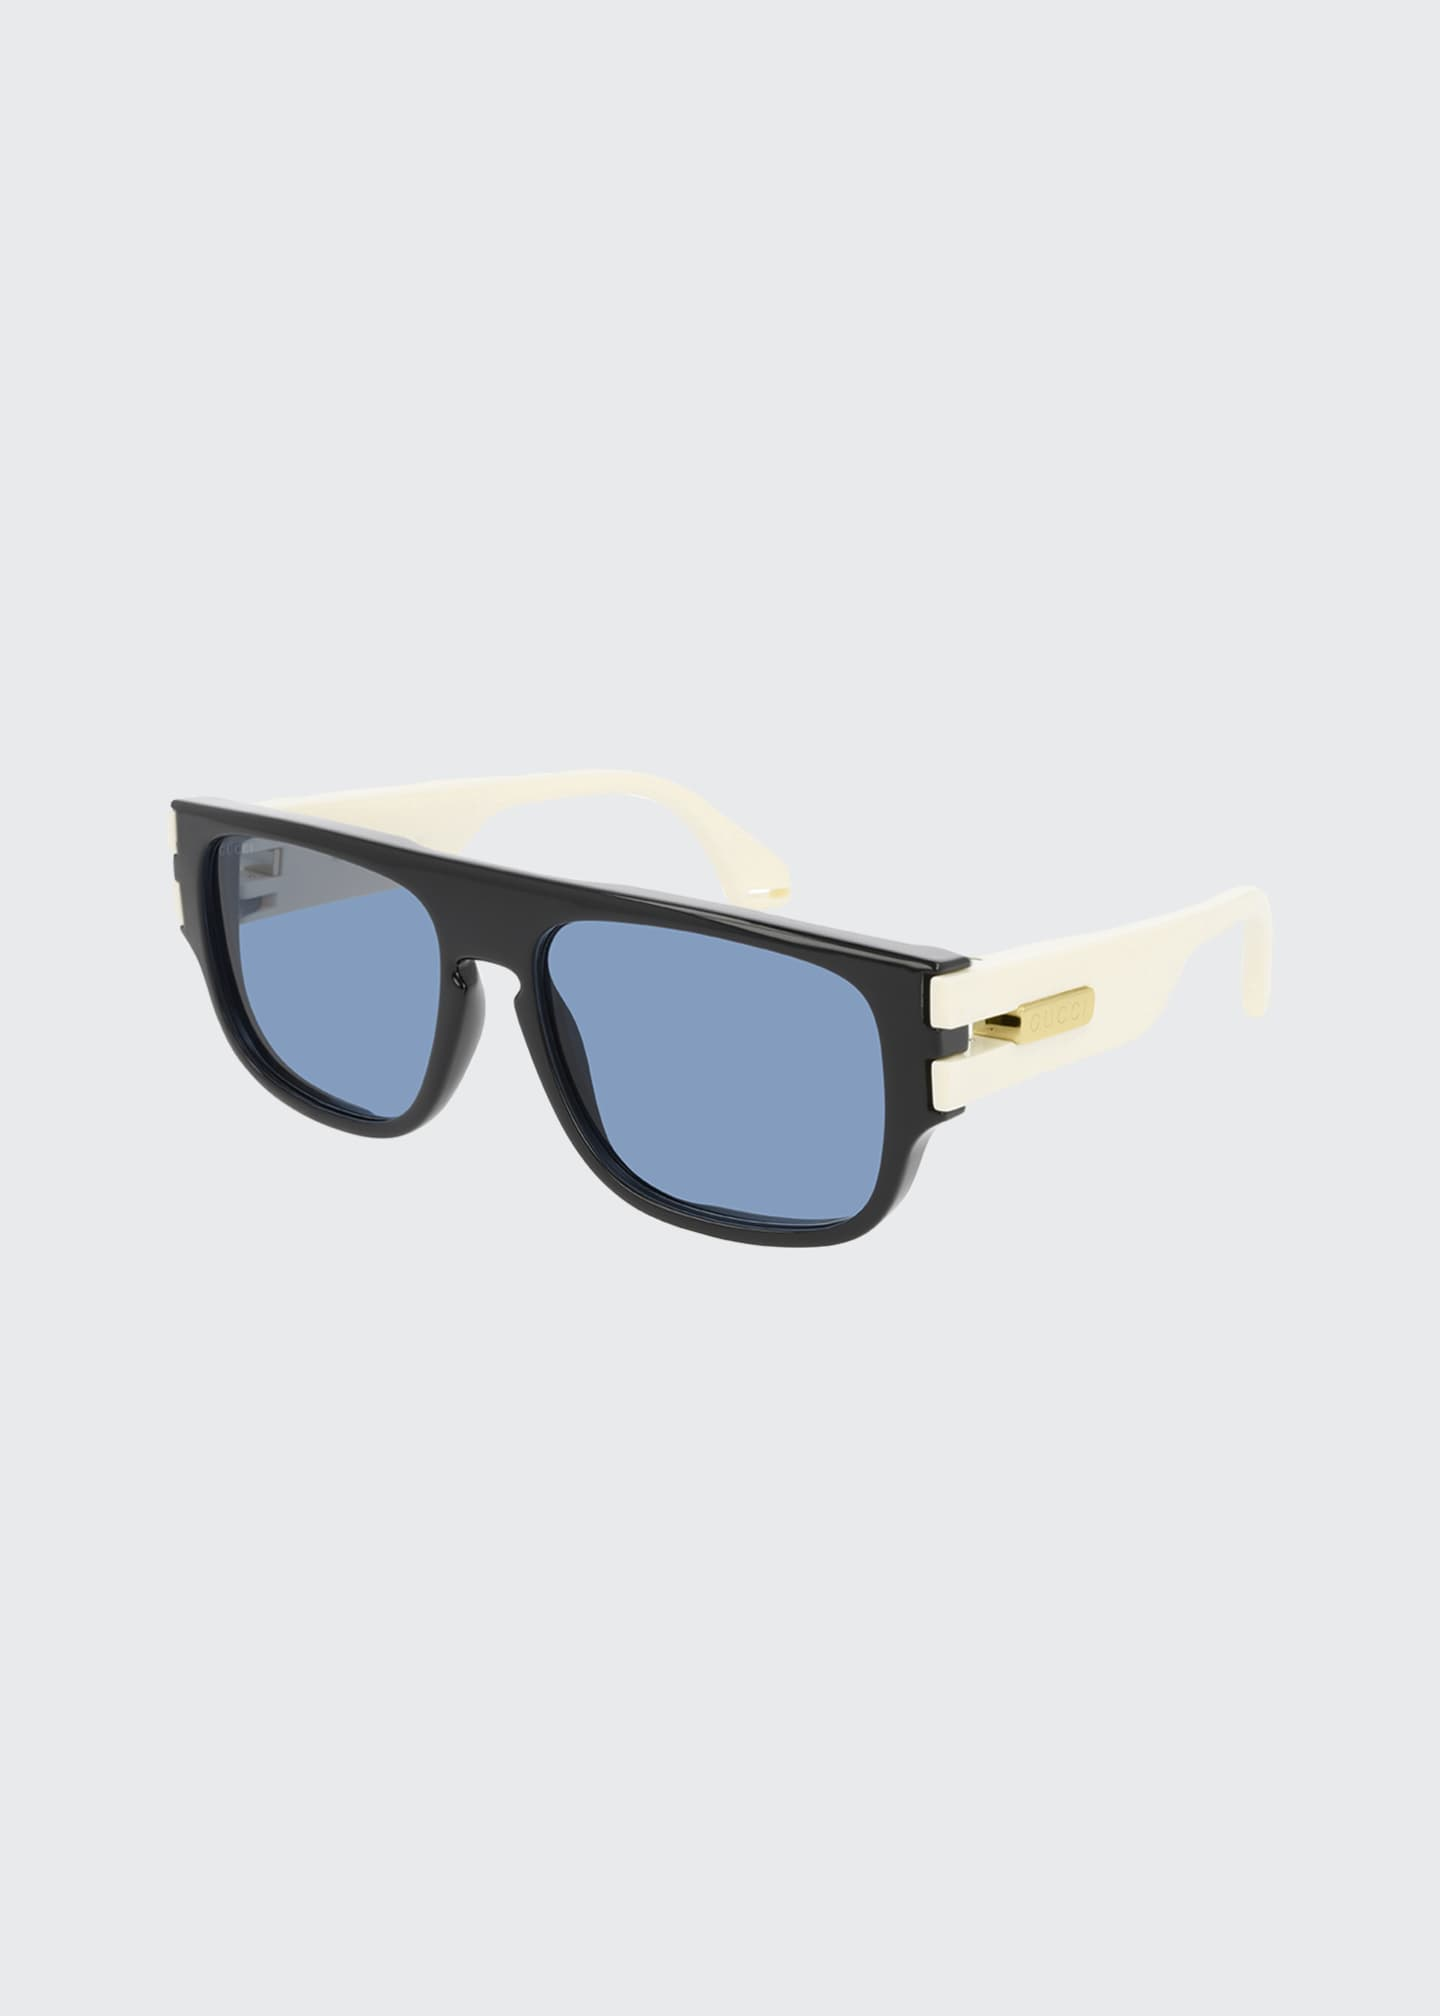 Image 1 of 1: Men's Square Two-Tone Injection Sunglasses